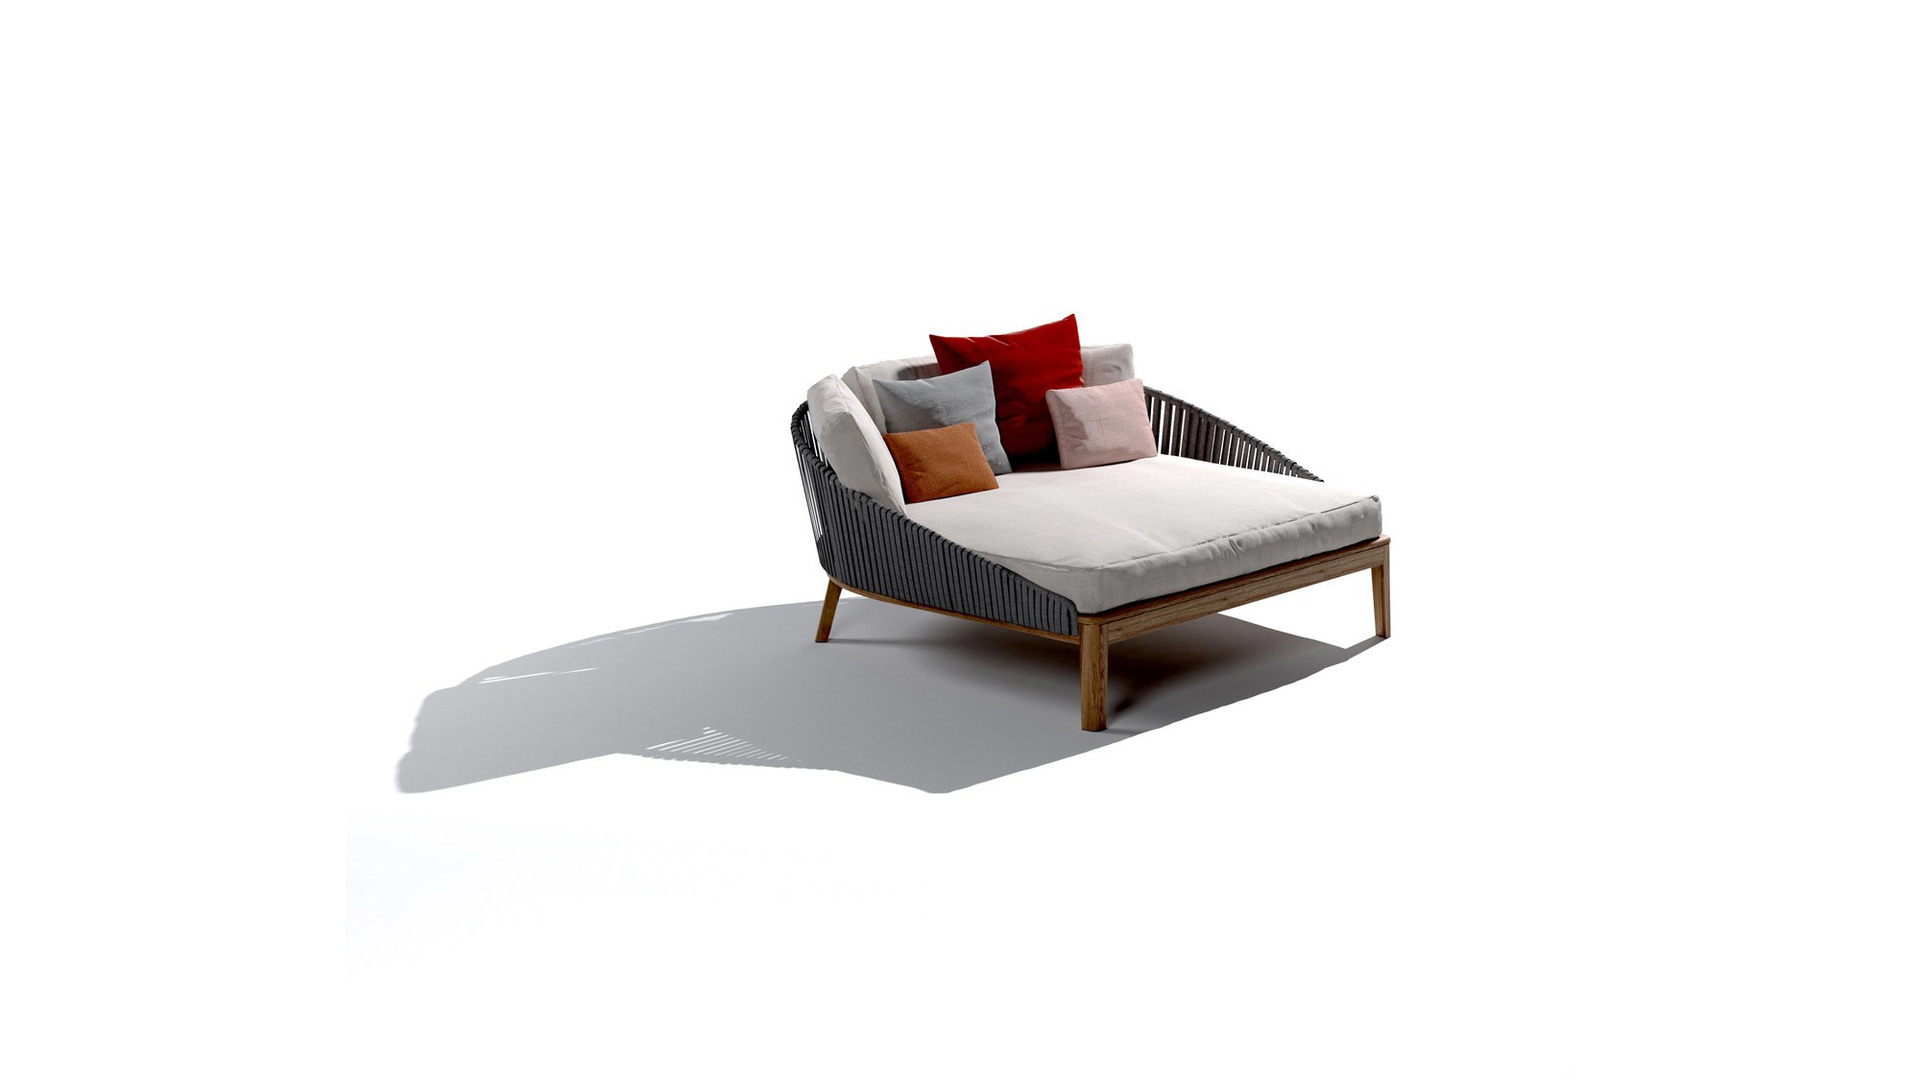 Mood-Lounge-Bed-with-cushions.jpg